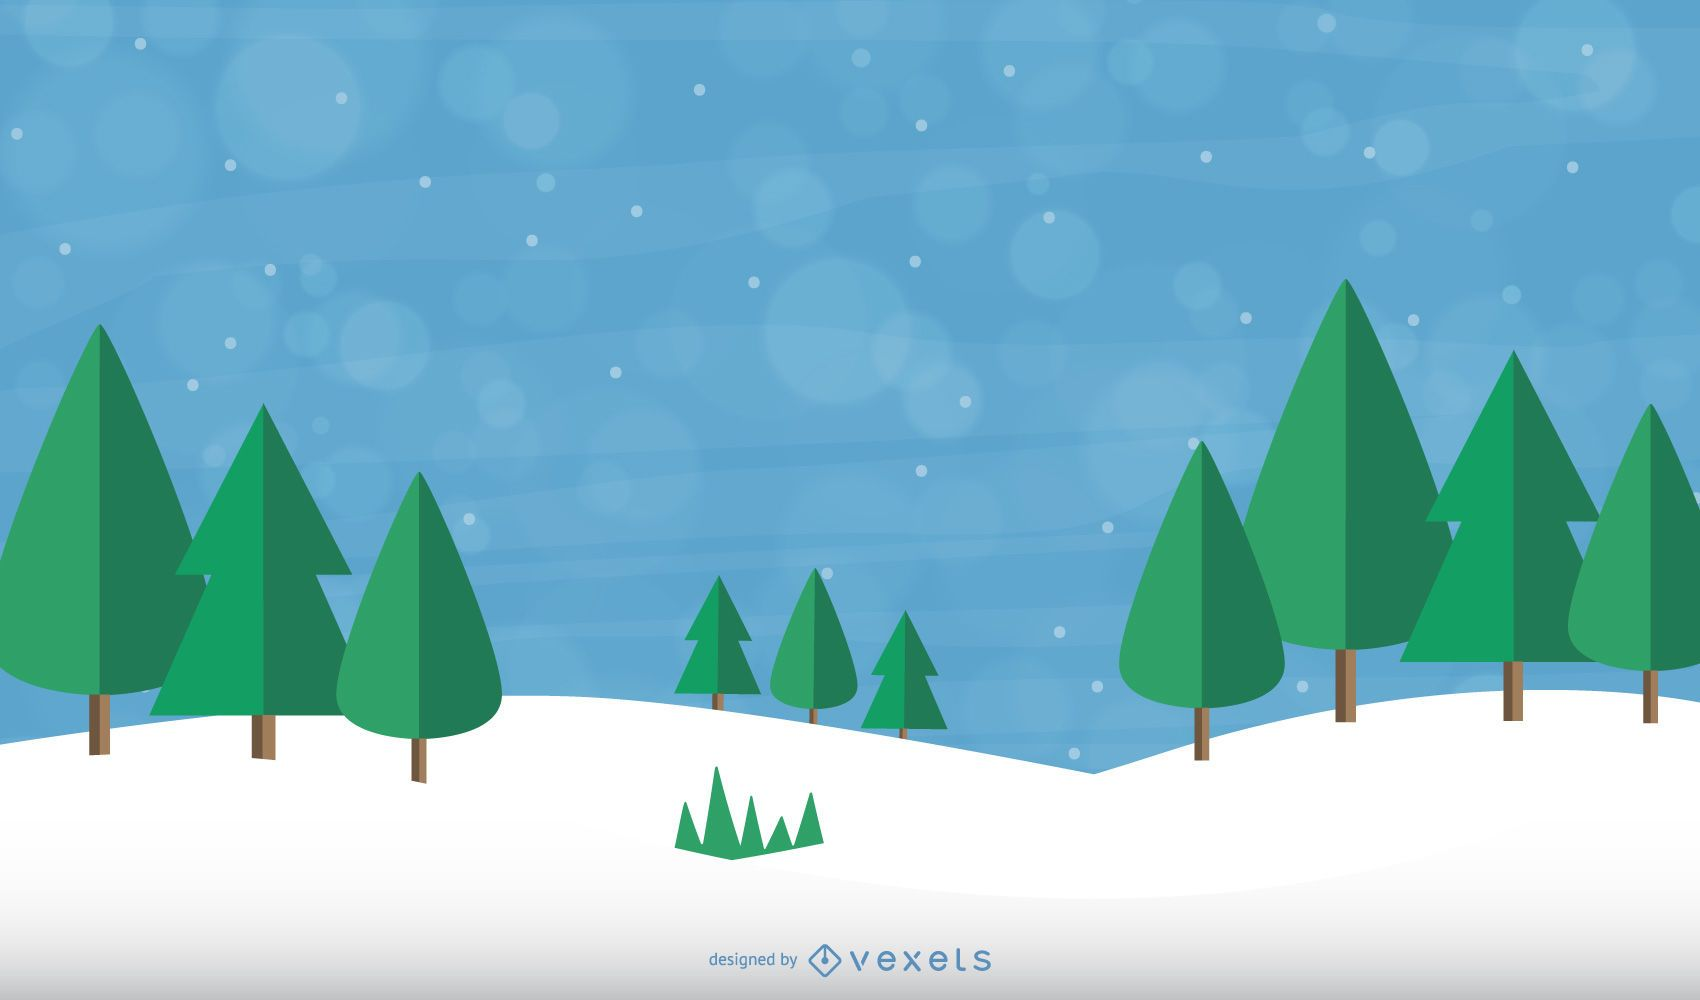 Abstract Xmas Trees on Snowflakes Background